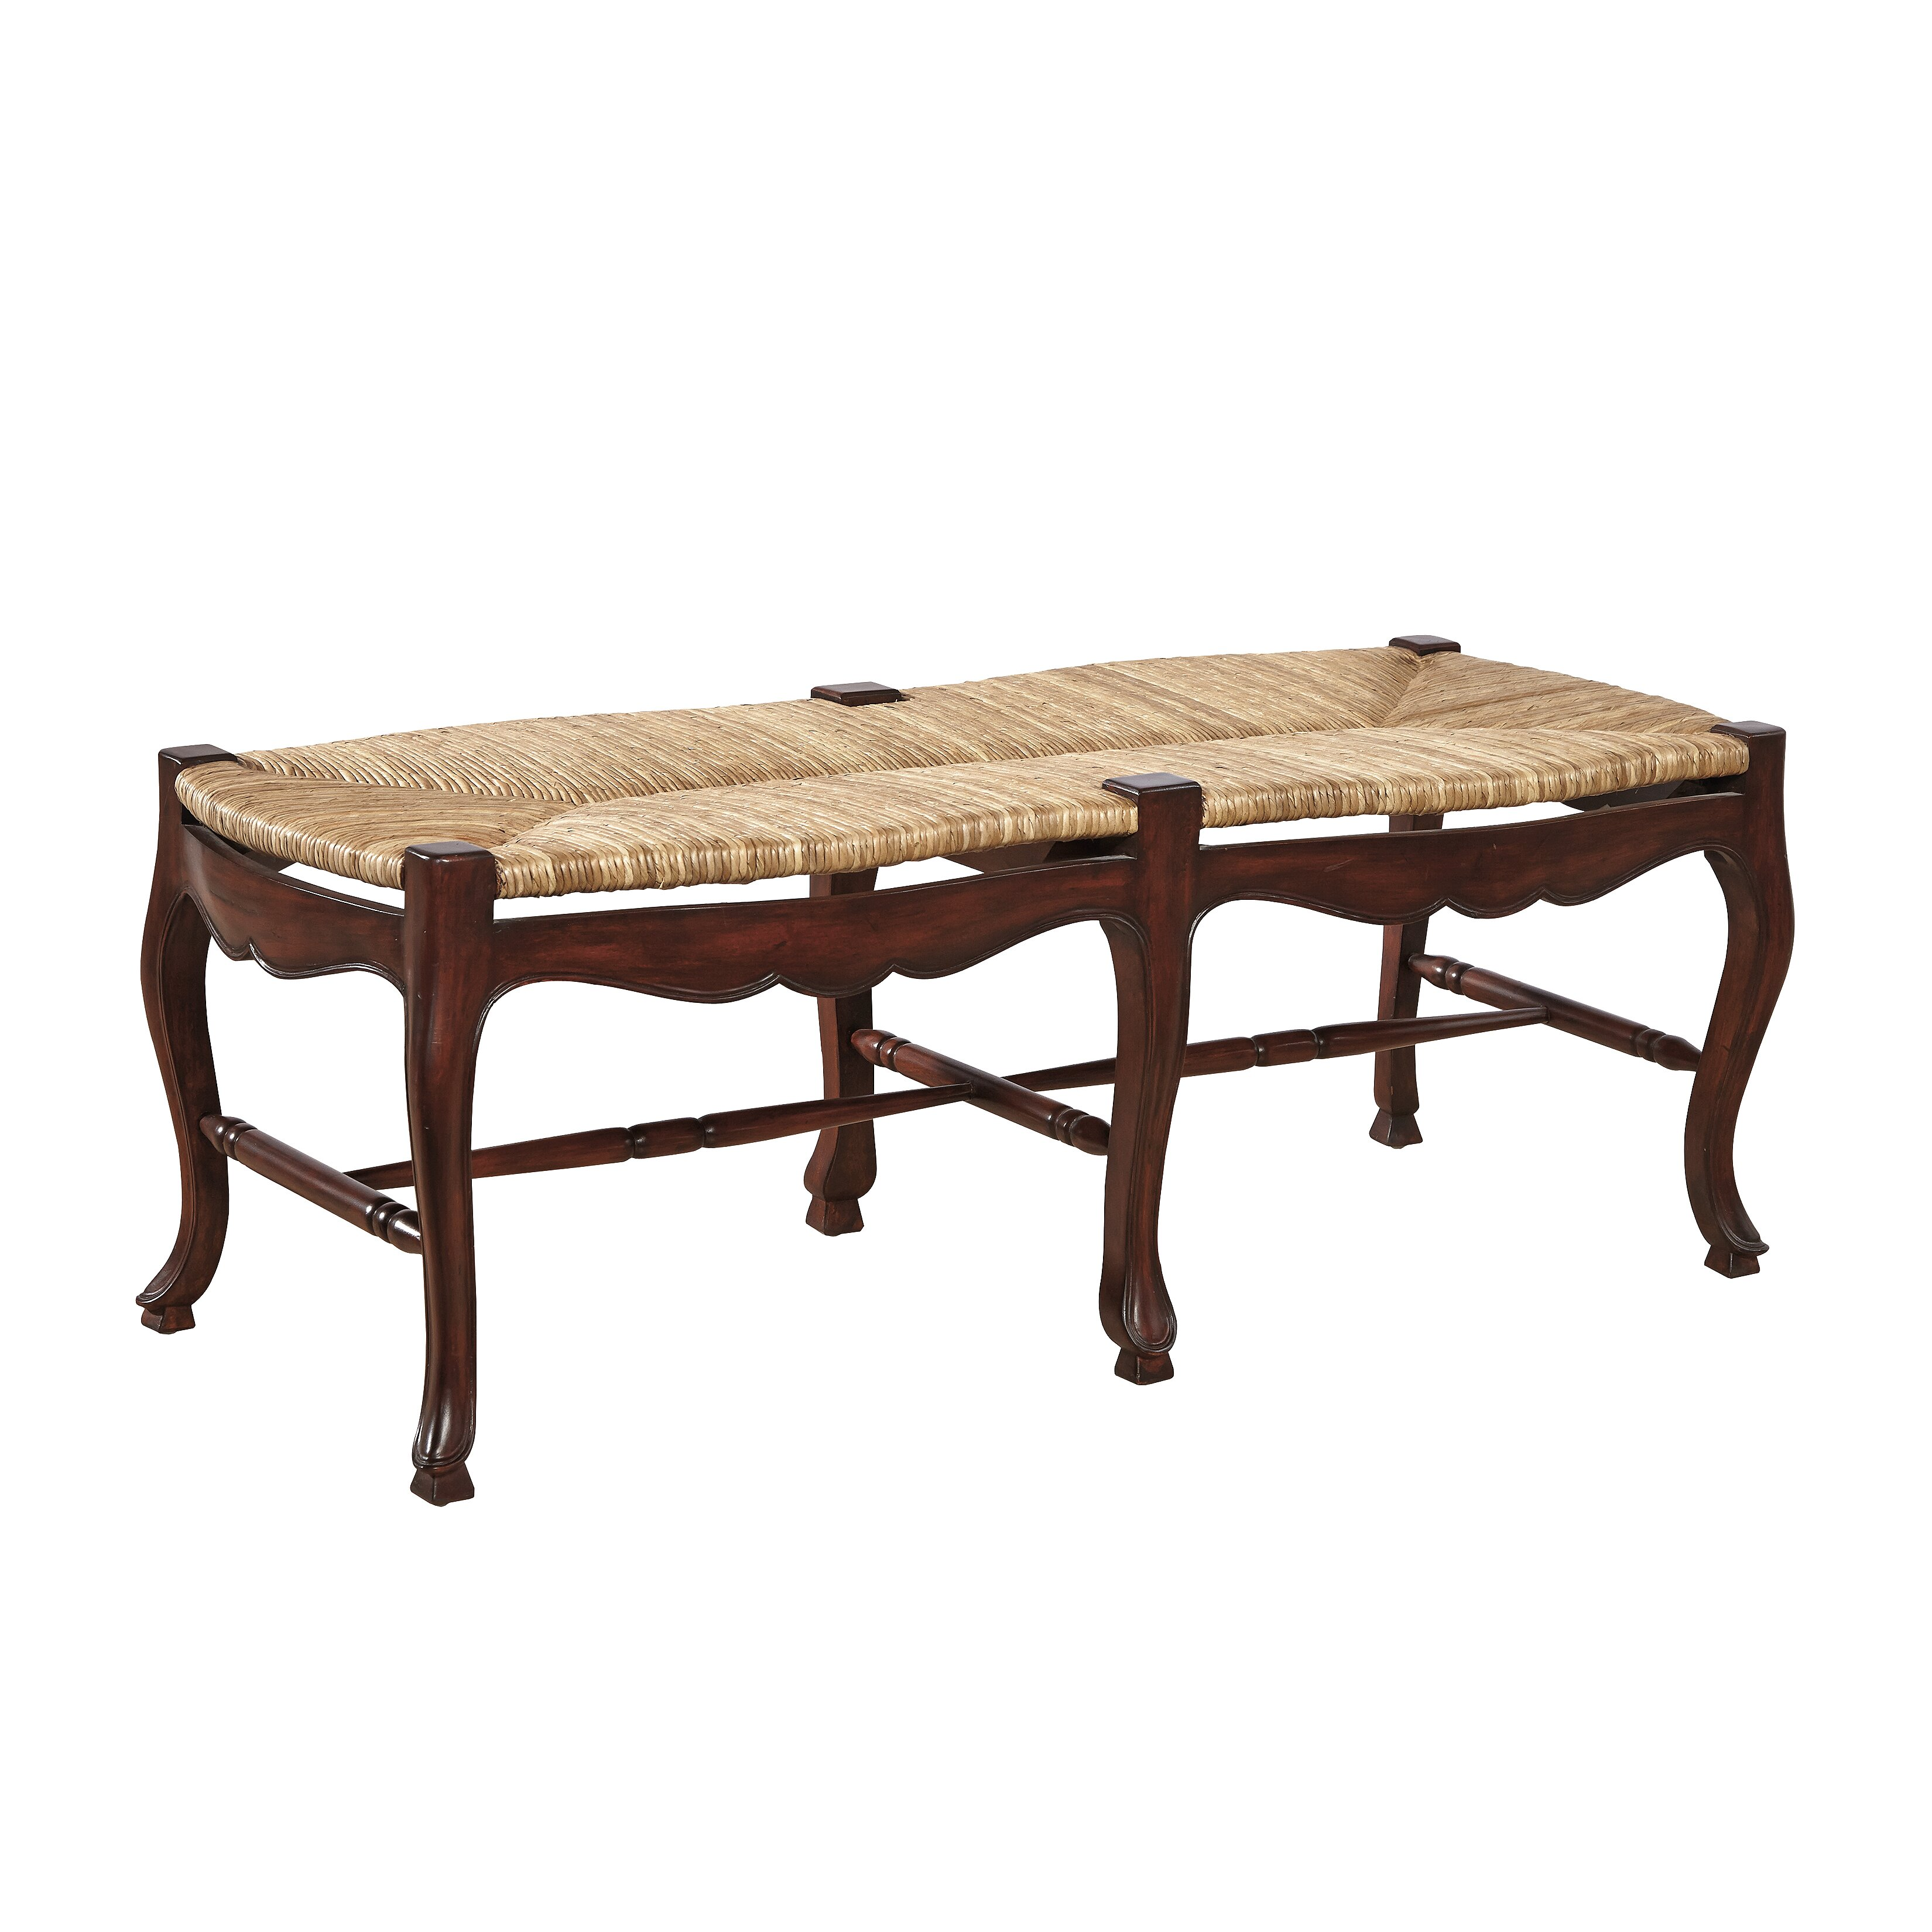 Furniture Classics Ltd French Country Mahogany Bench